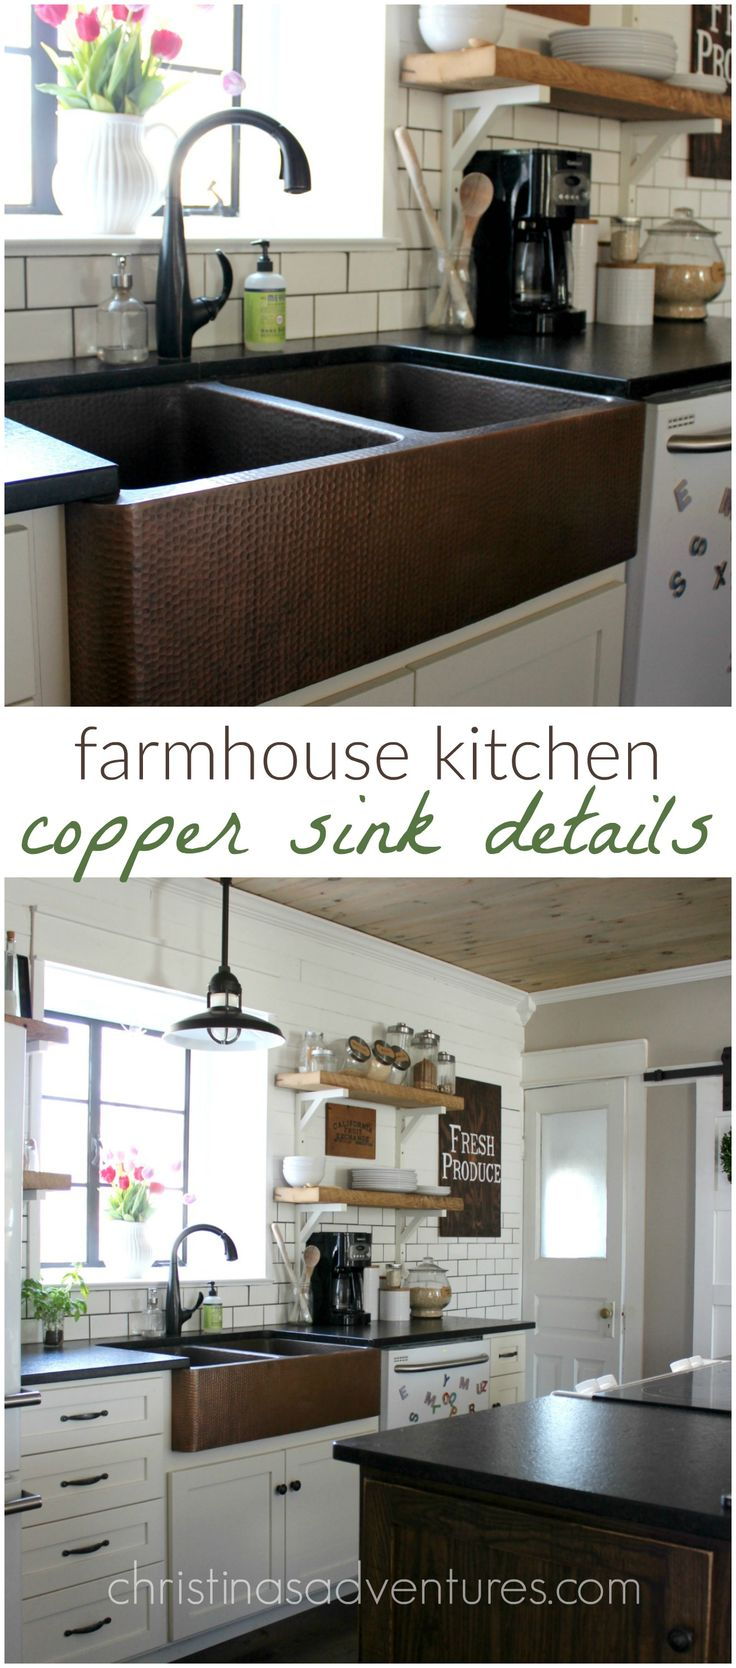 Farmhouse Style Kitchen Sinks 25 Best Ideas About Double Farmhouse Sink On Pinterest Farm